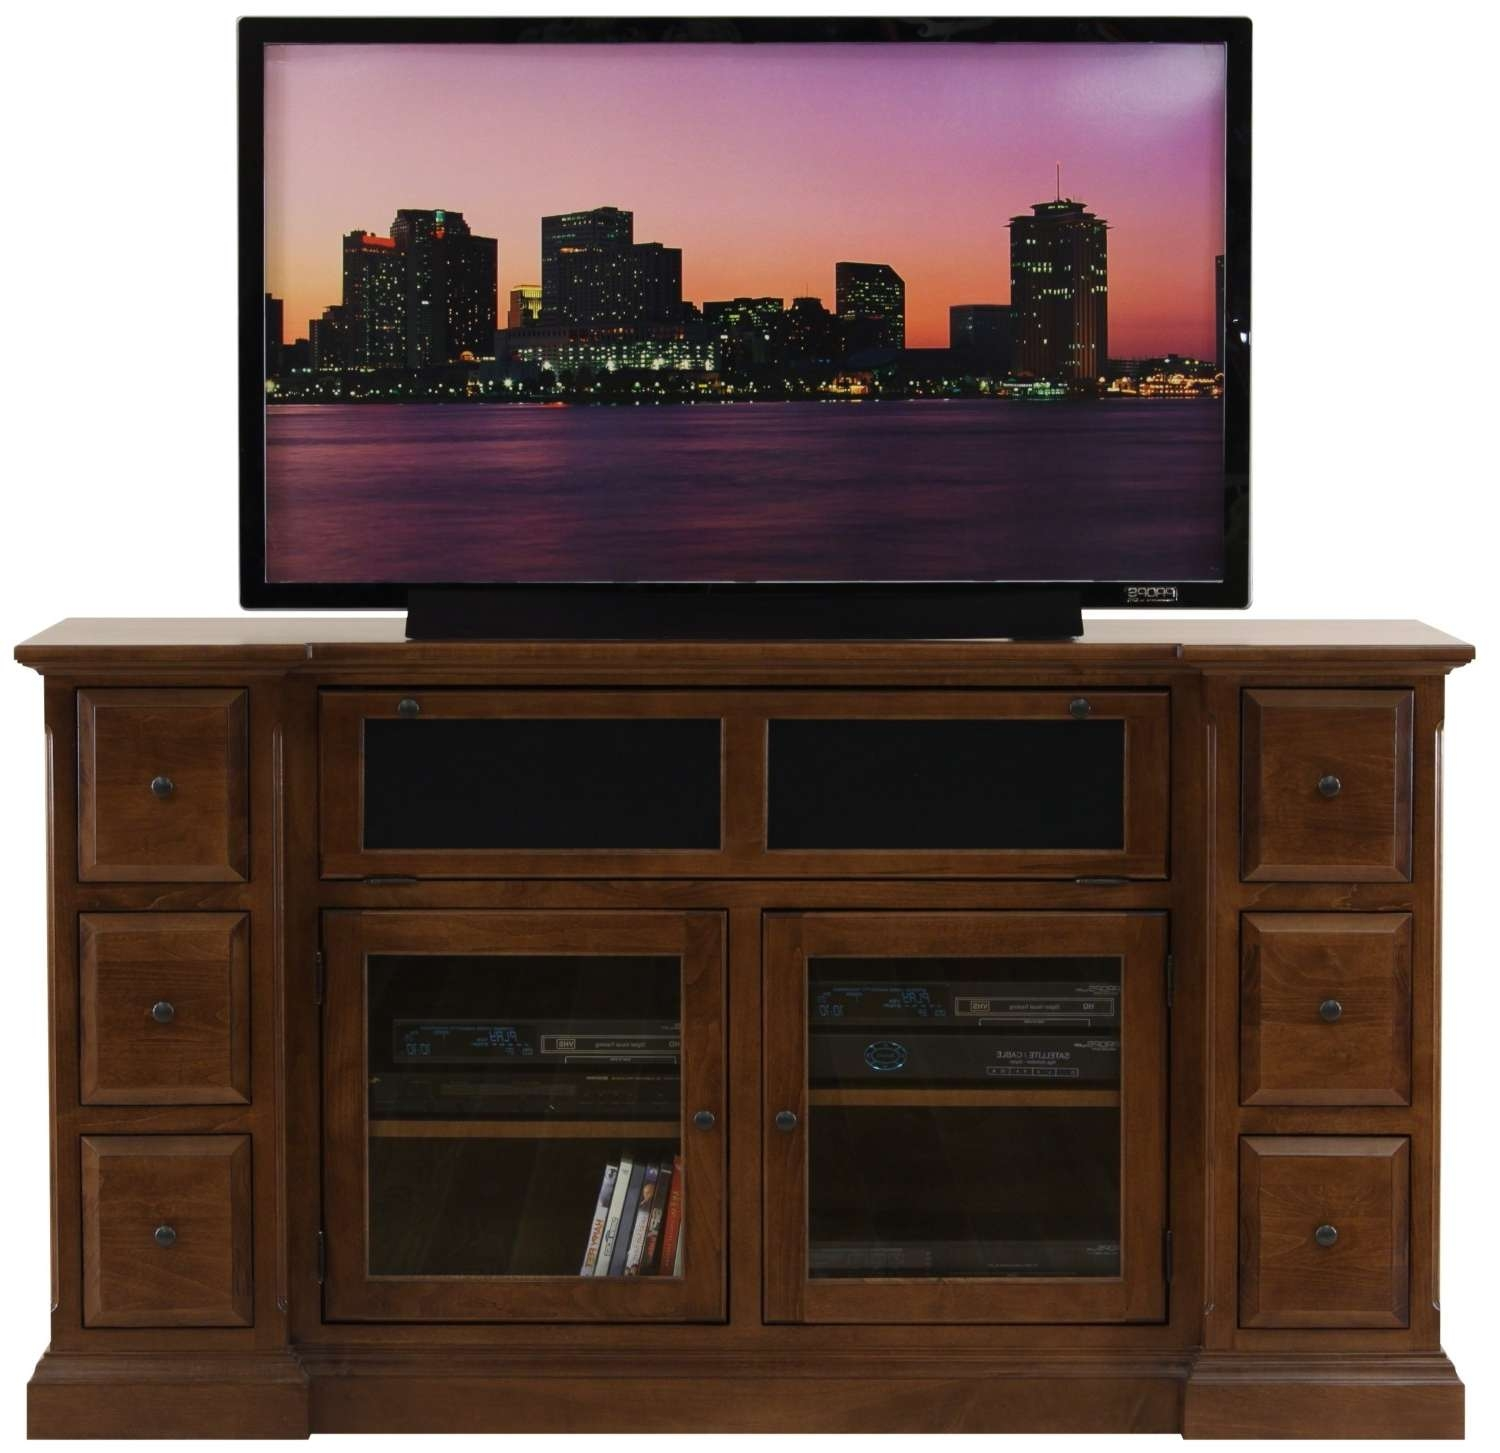 Exquisite Design Tv Stand Cabinet And 47 With Whshini Com Regarding Tv Stands And Cabinets (View 3 of 15)